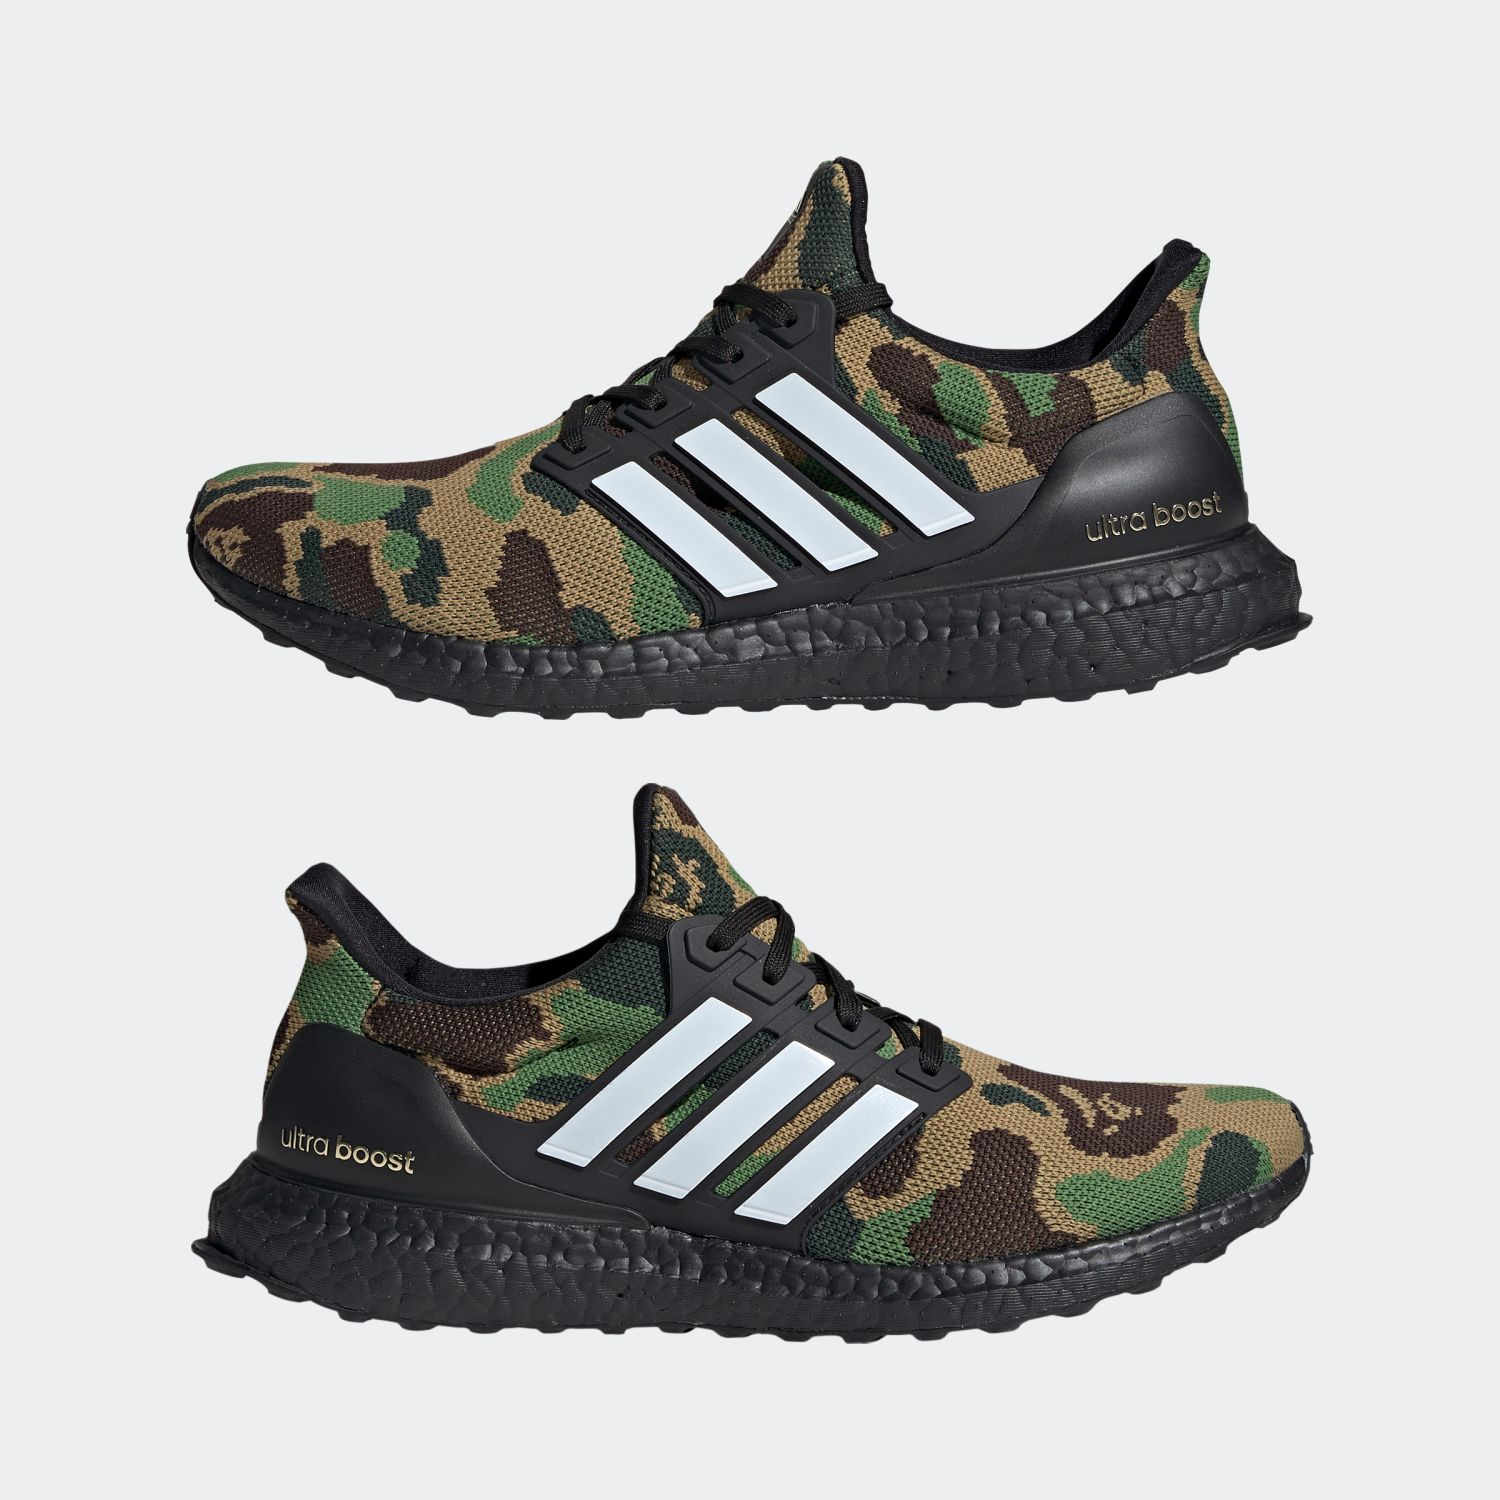 bape-a-bathing-ape-adidas-ultra-boost-green-release-20190202